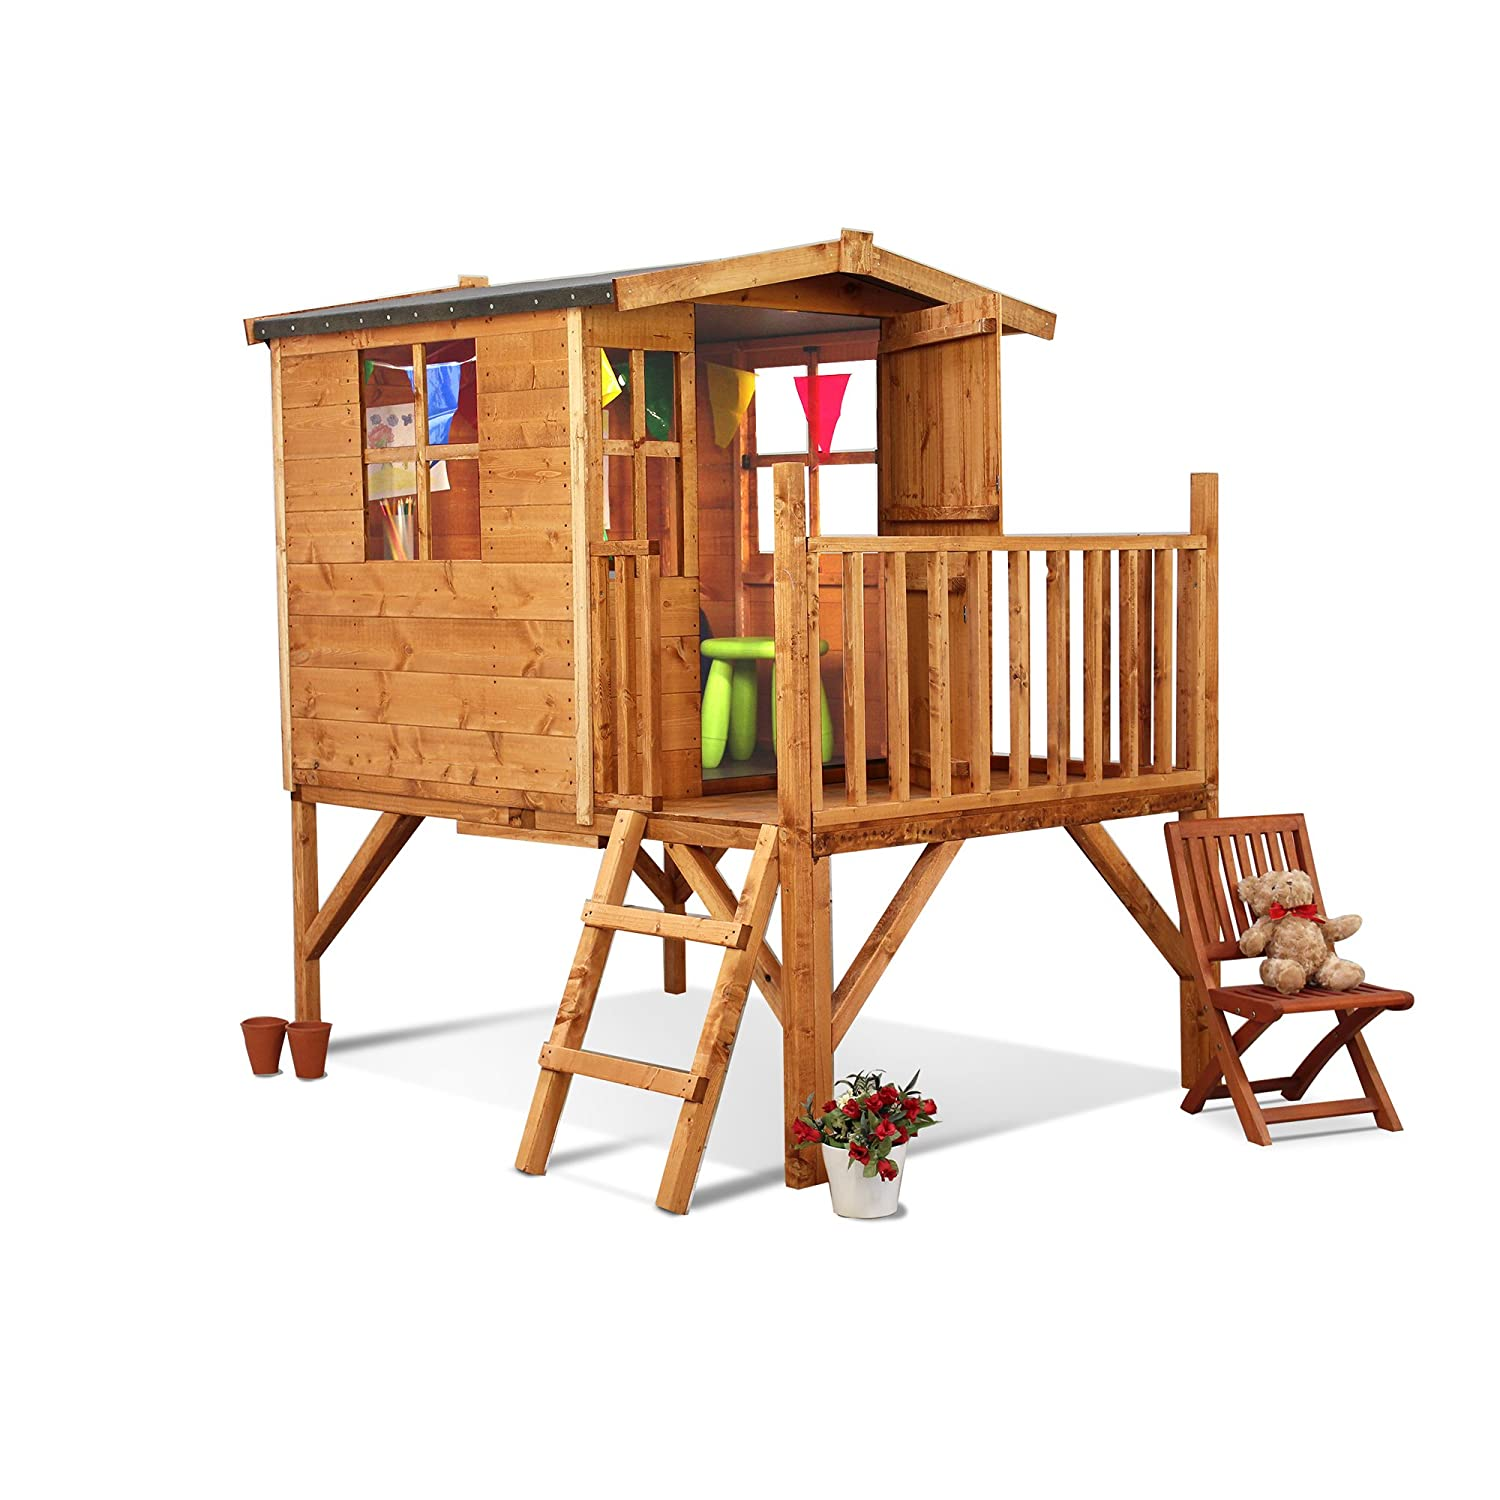 Outdoor Wooden Childrens Playhouse with Slide Wendy House Raised